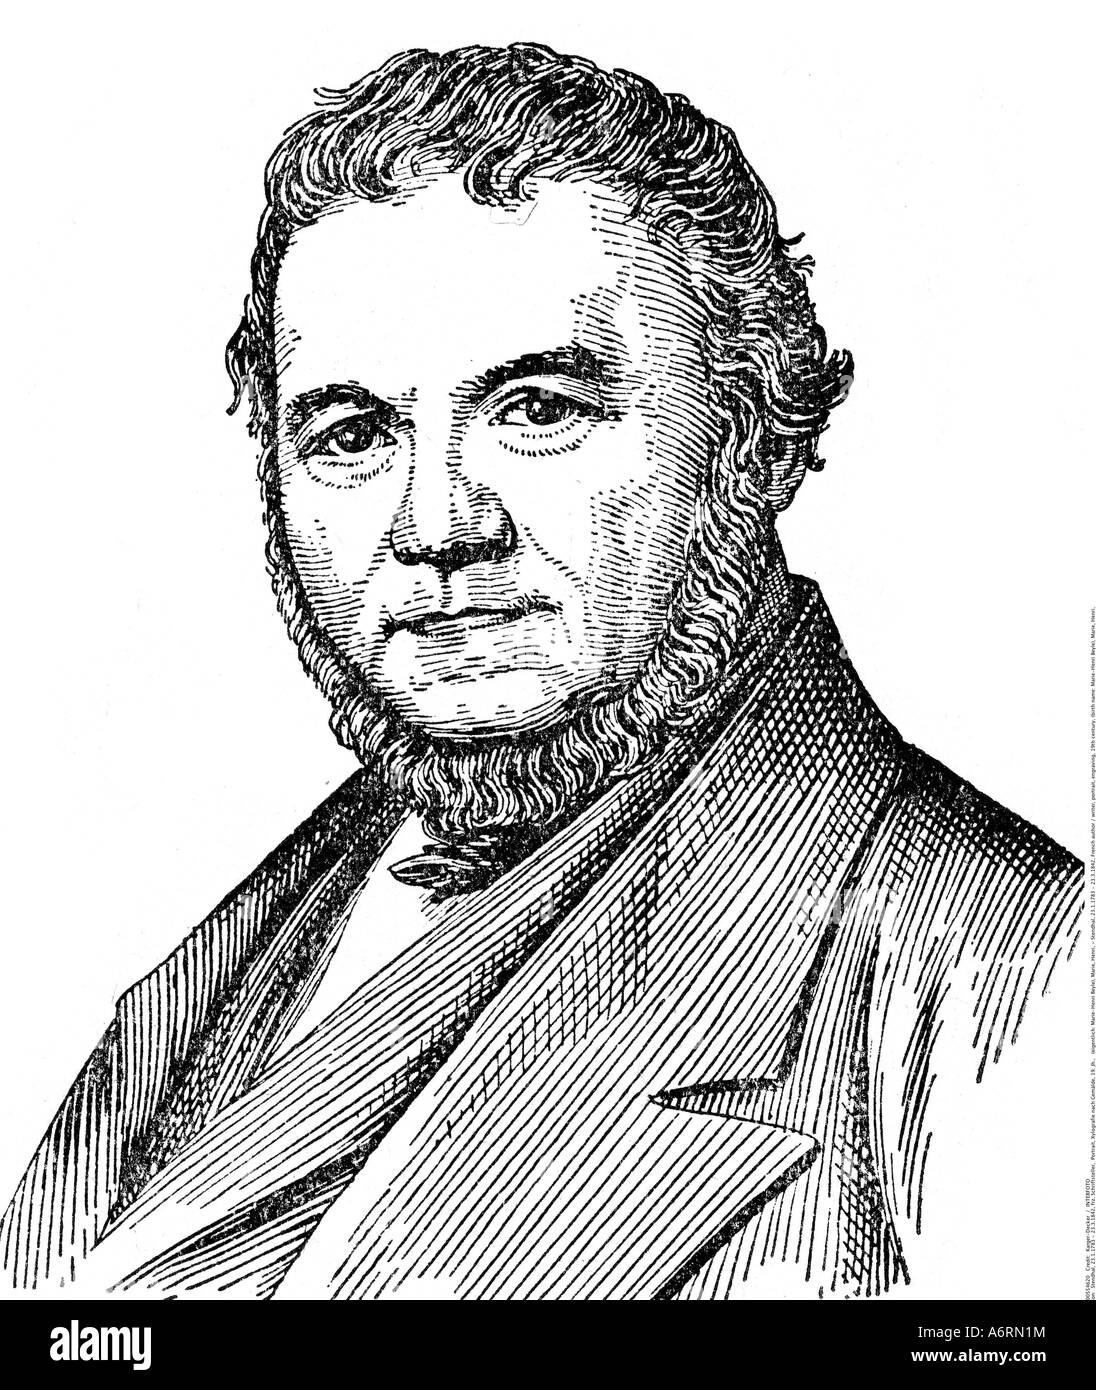 stendhal french author writer portrait stendhal 23 1 1783 23 3 1842 french author writer portrait engraving 19th century birth marie henri beyle mar